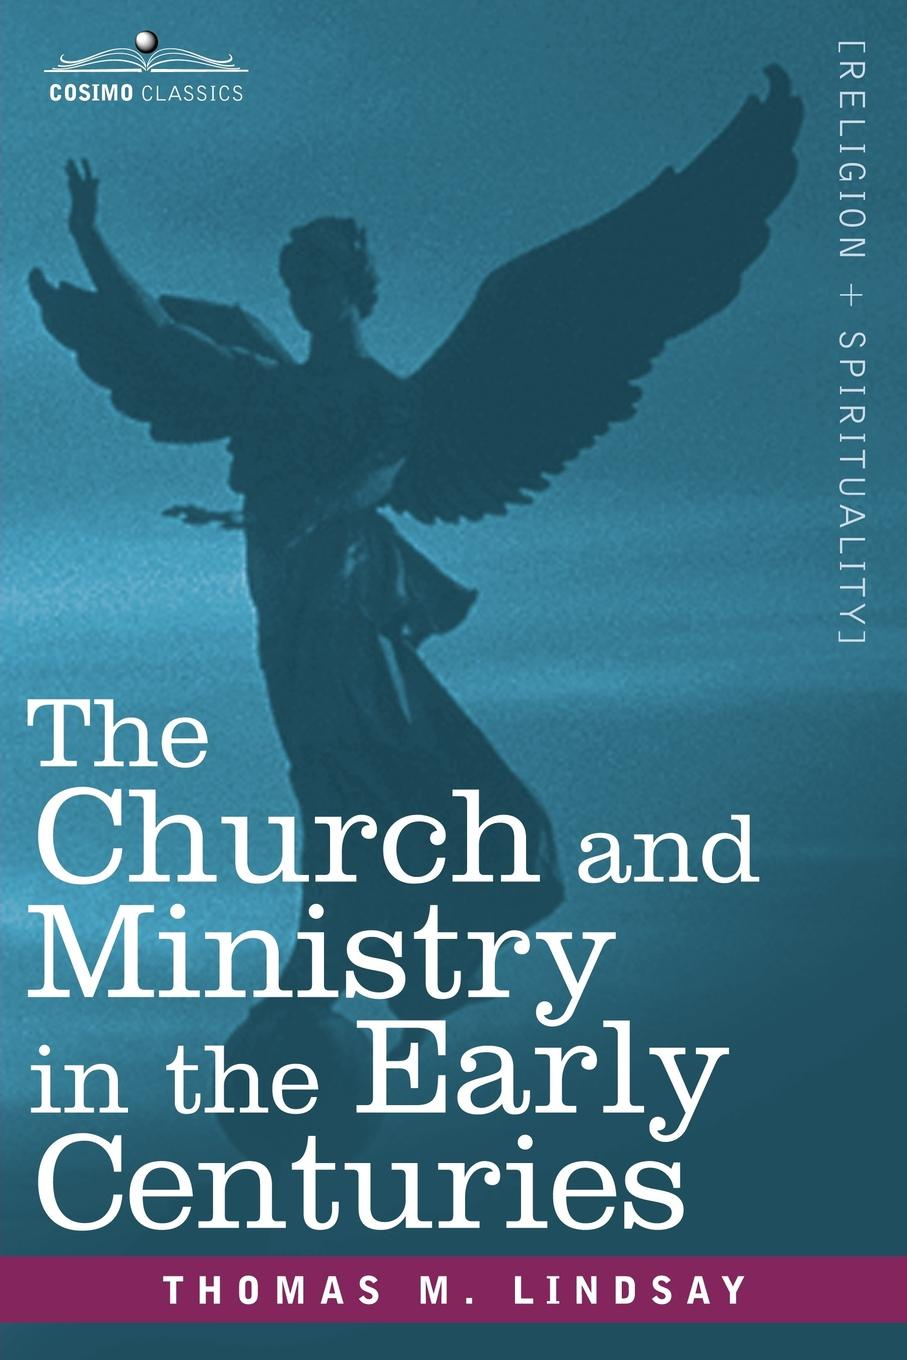 Thomas M. Lindsay The Church and Ministry in the Early Centuries hearing healing hope the ministry of service in challenging times